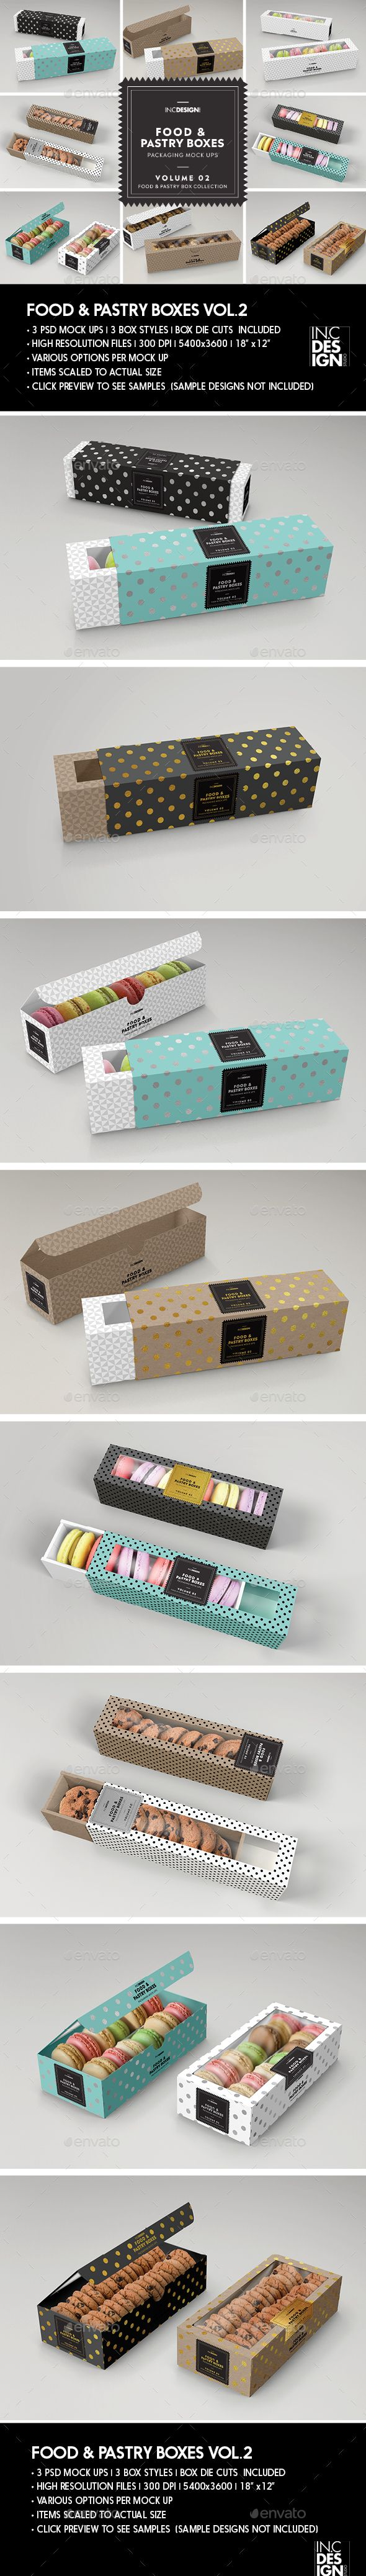 Download Food Pastry Boxes Vol 2 Cookies Macarons Pastry Take Out Packaging Mock Ups Food And Drink Packaging Desain Kemasan Ide Kemasan Kemasan